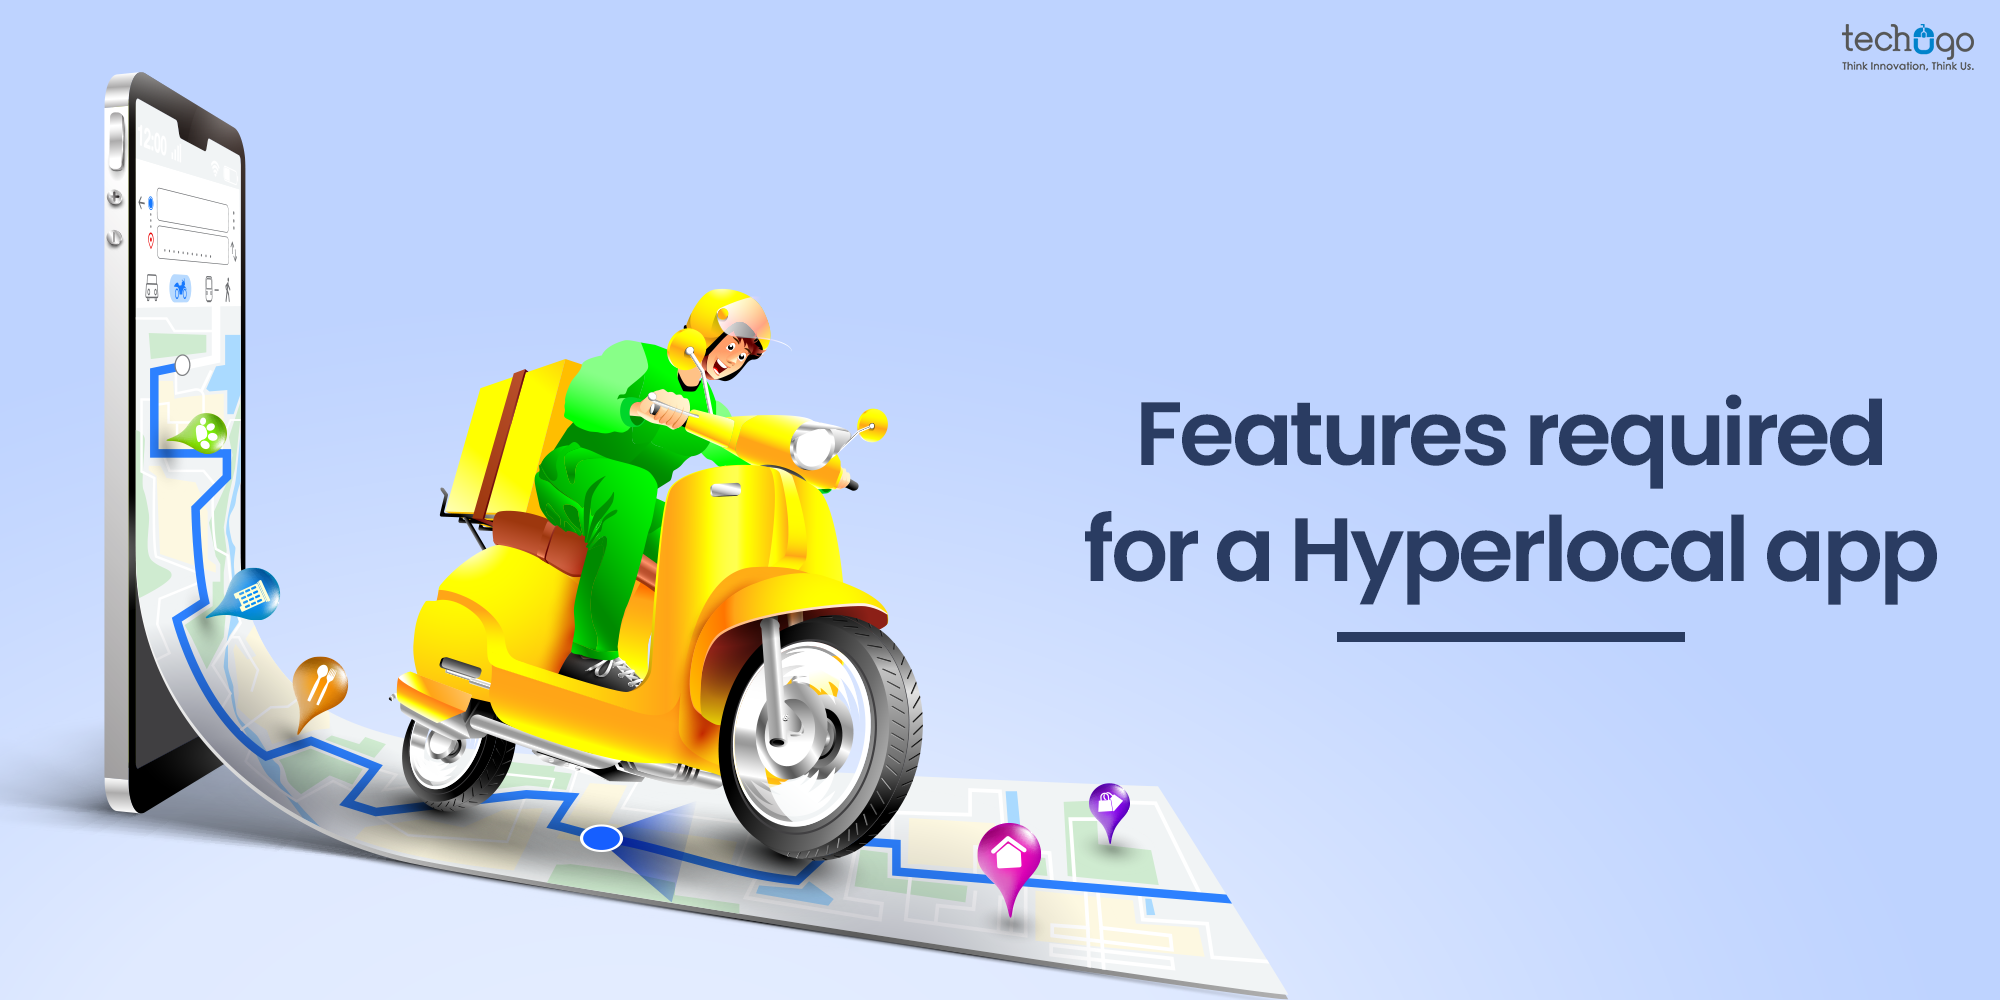 Features required for a Hyperlocal app